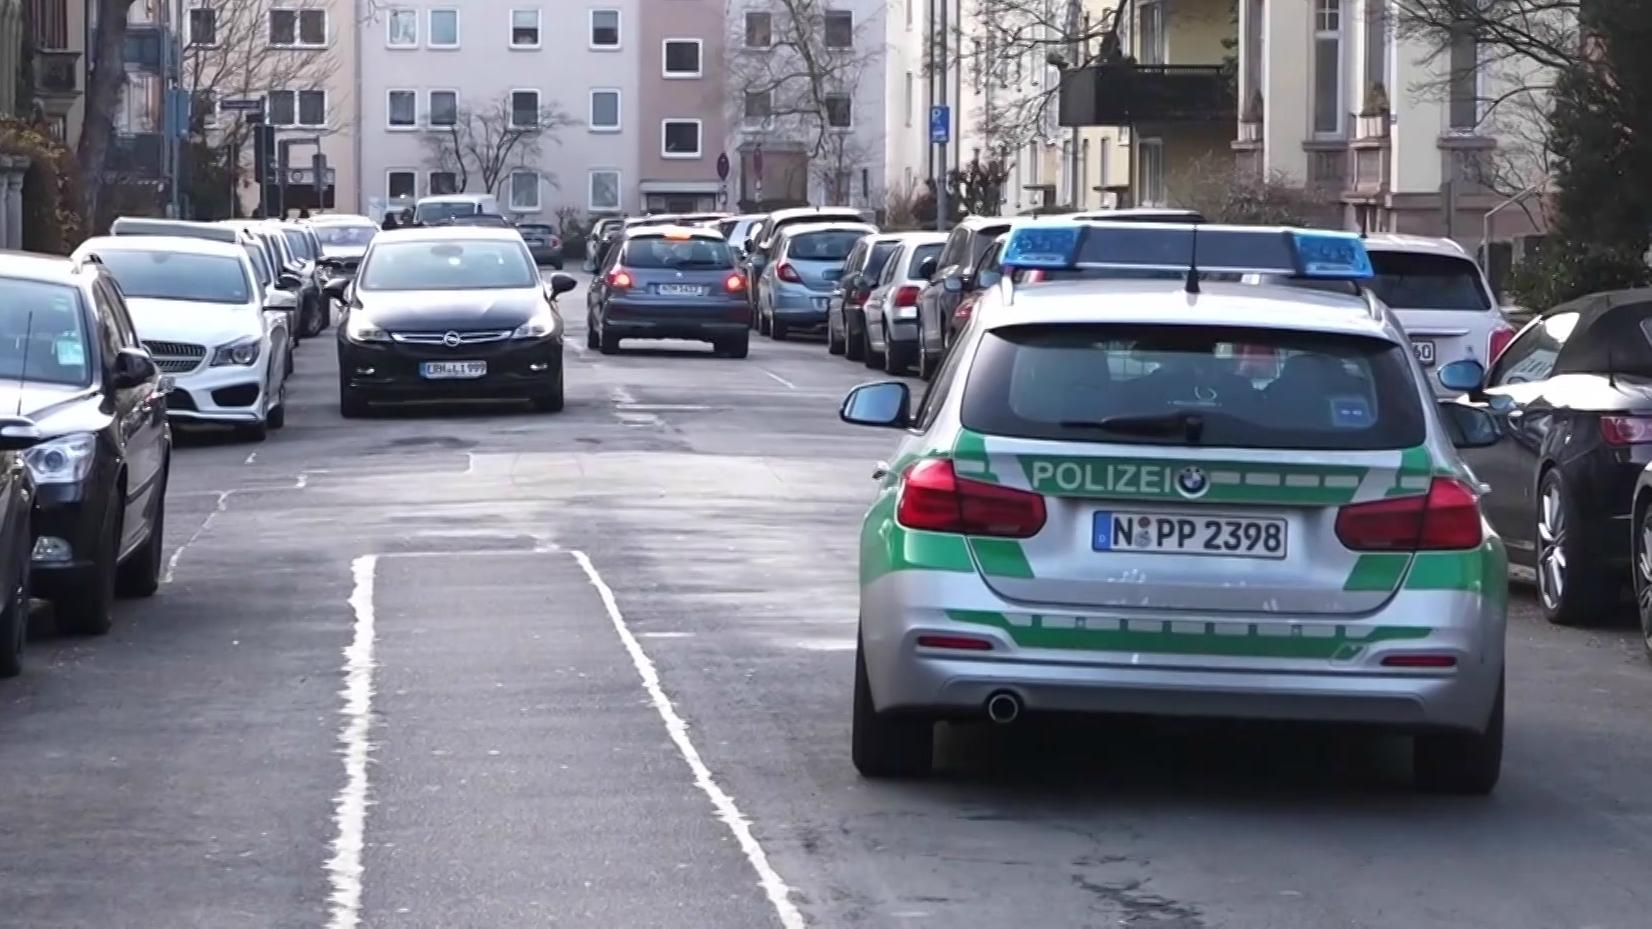 Polizeiwagen in St. Johannis